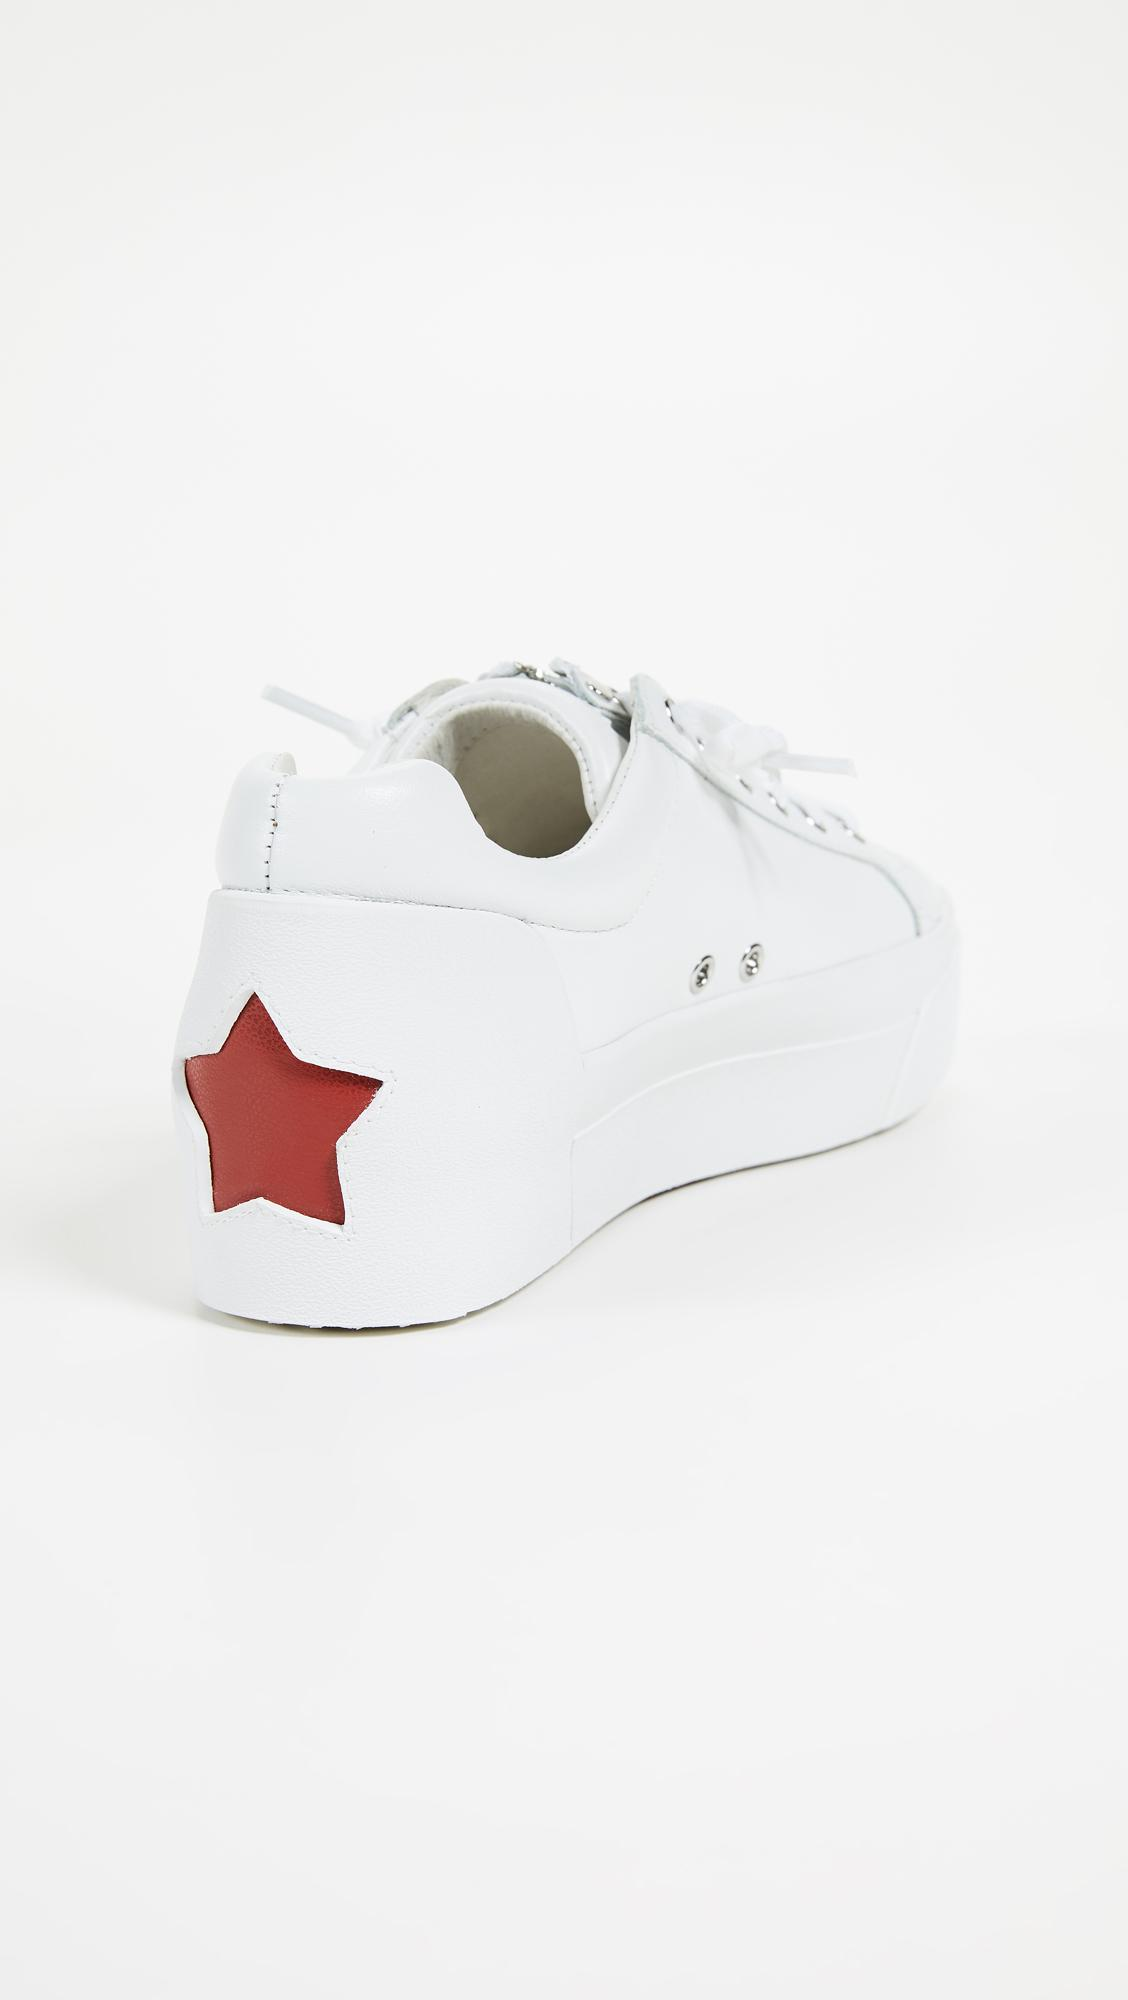 Ash Leather Buzz Platform Sneakers in White